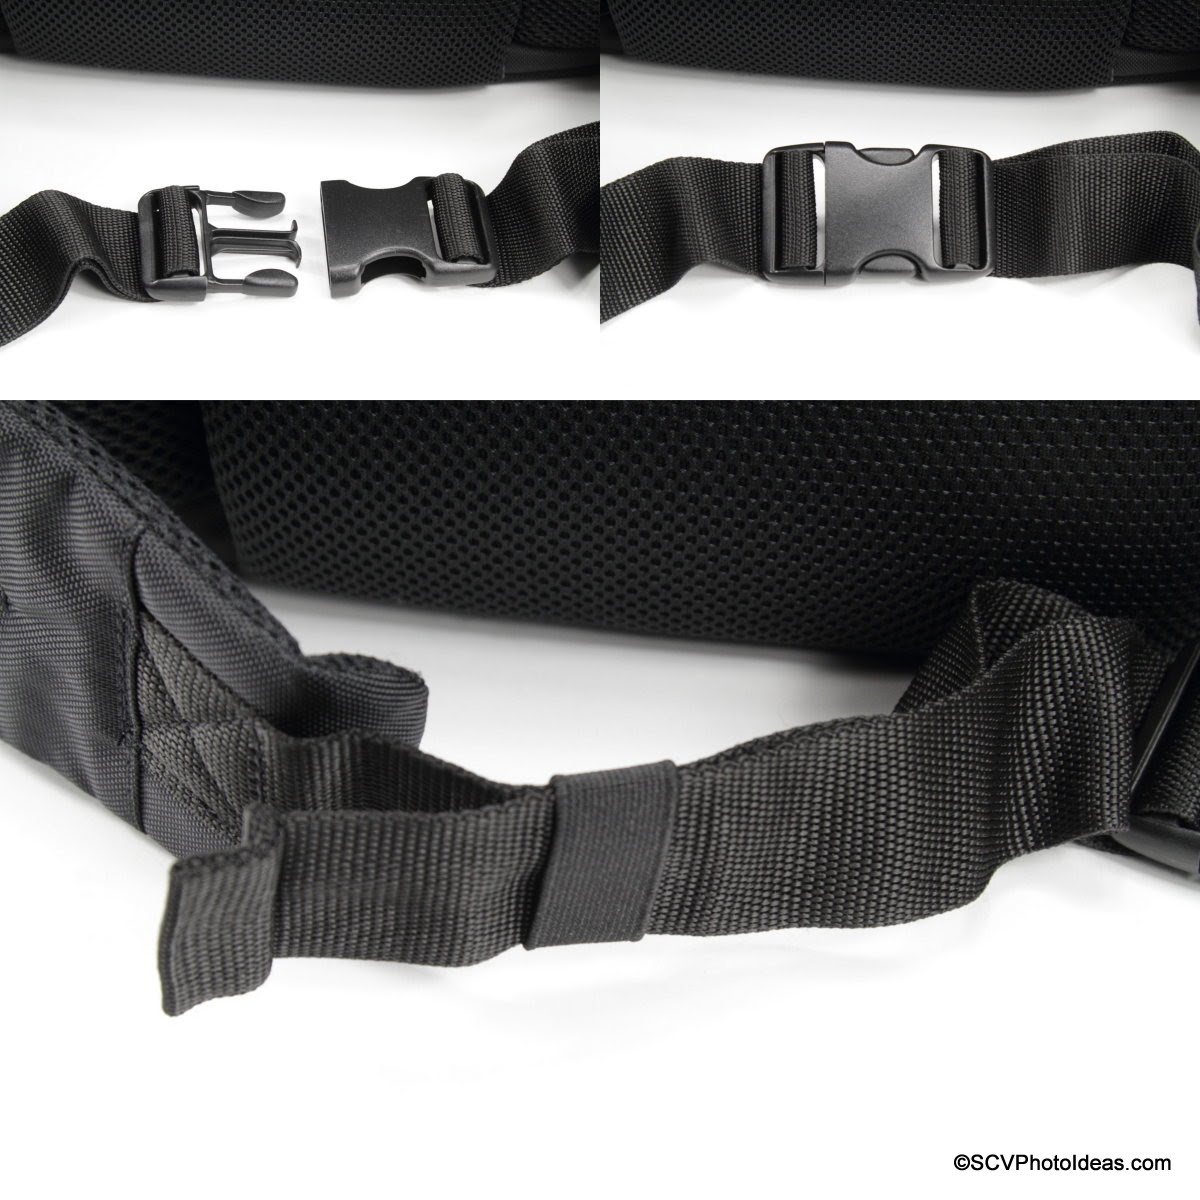 Case Logic DSB-103 waist belt buckle and strap details